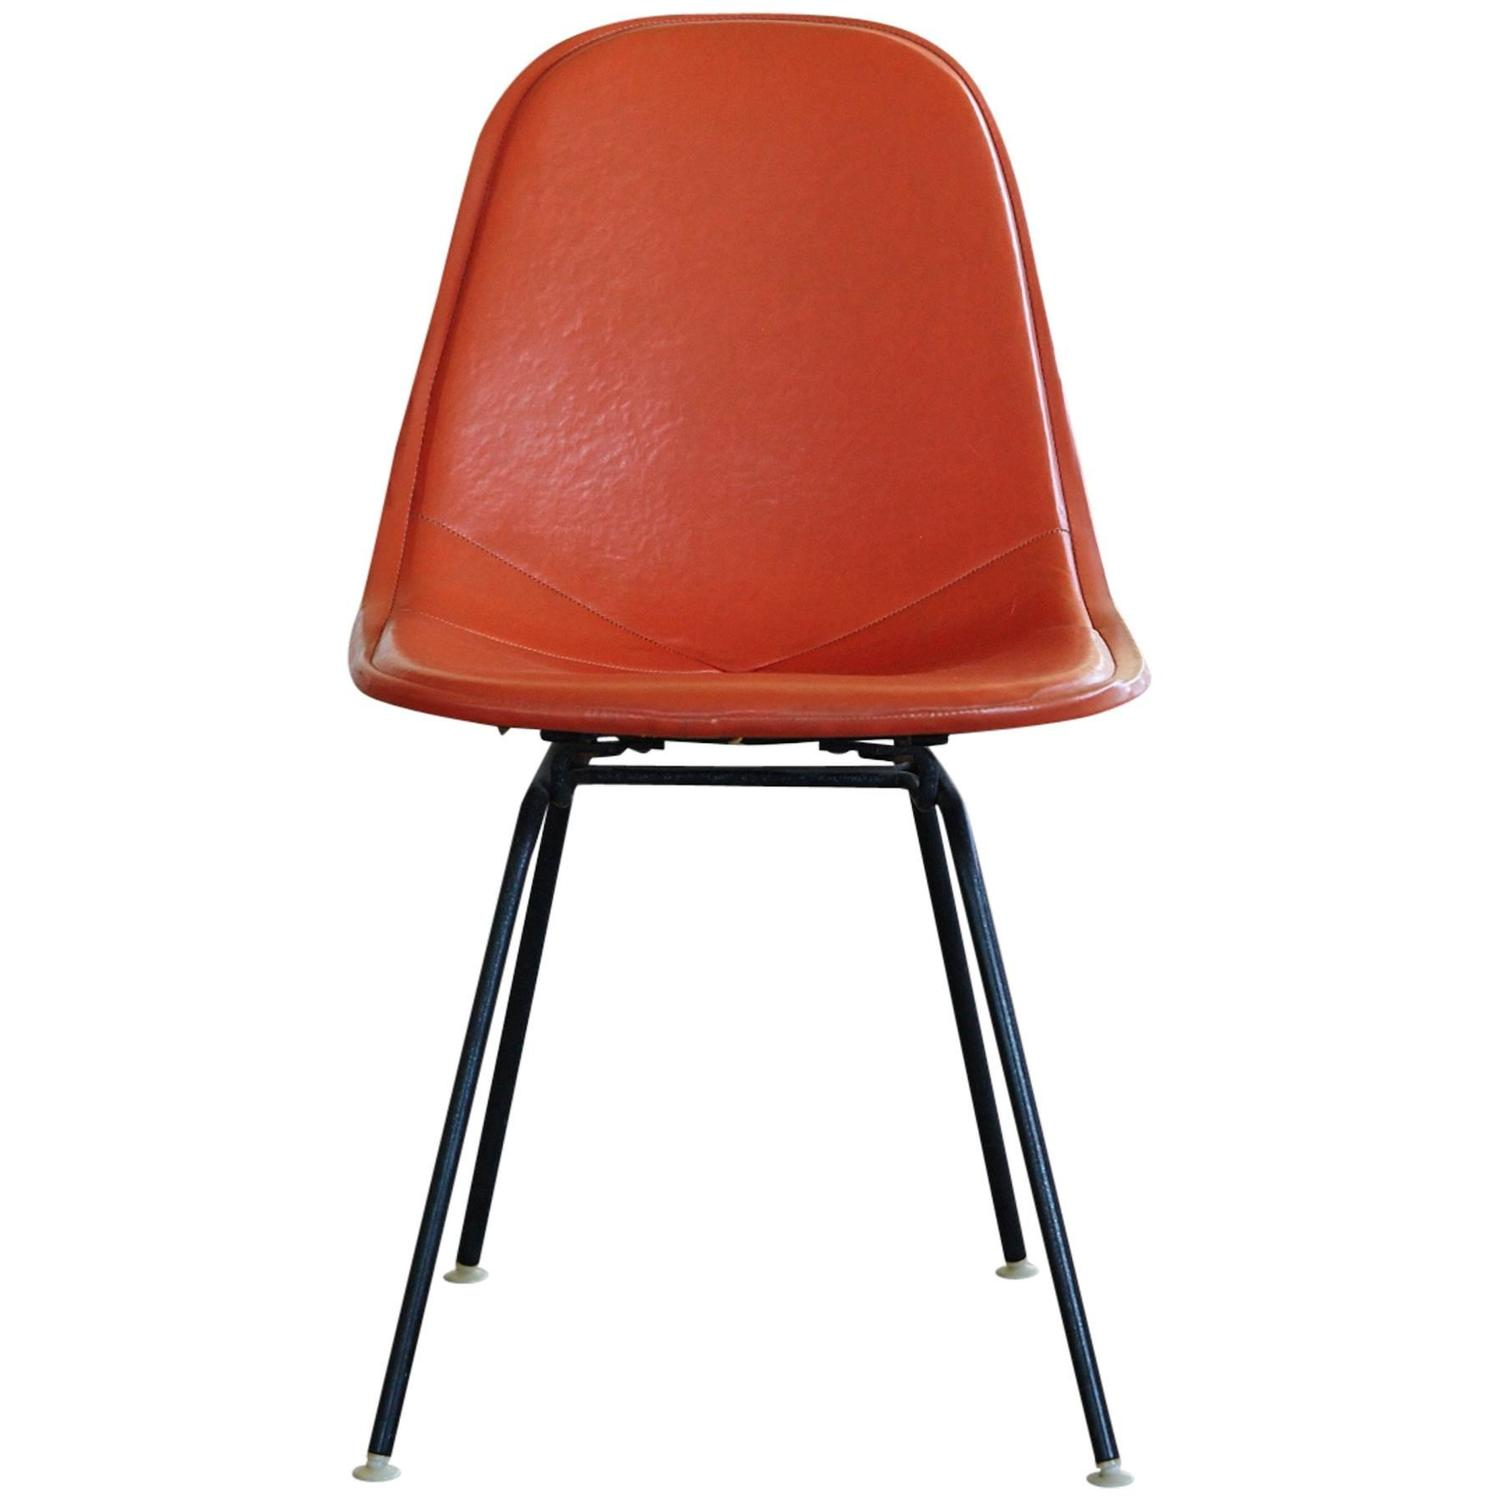 Dkx In Eames Original For 1 Miller Side Chair Orange Herman Leather eDYEH29IW